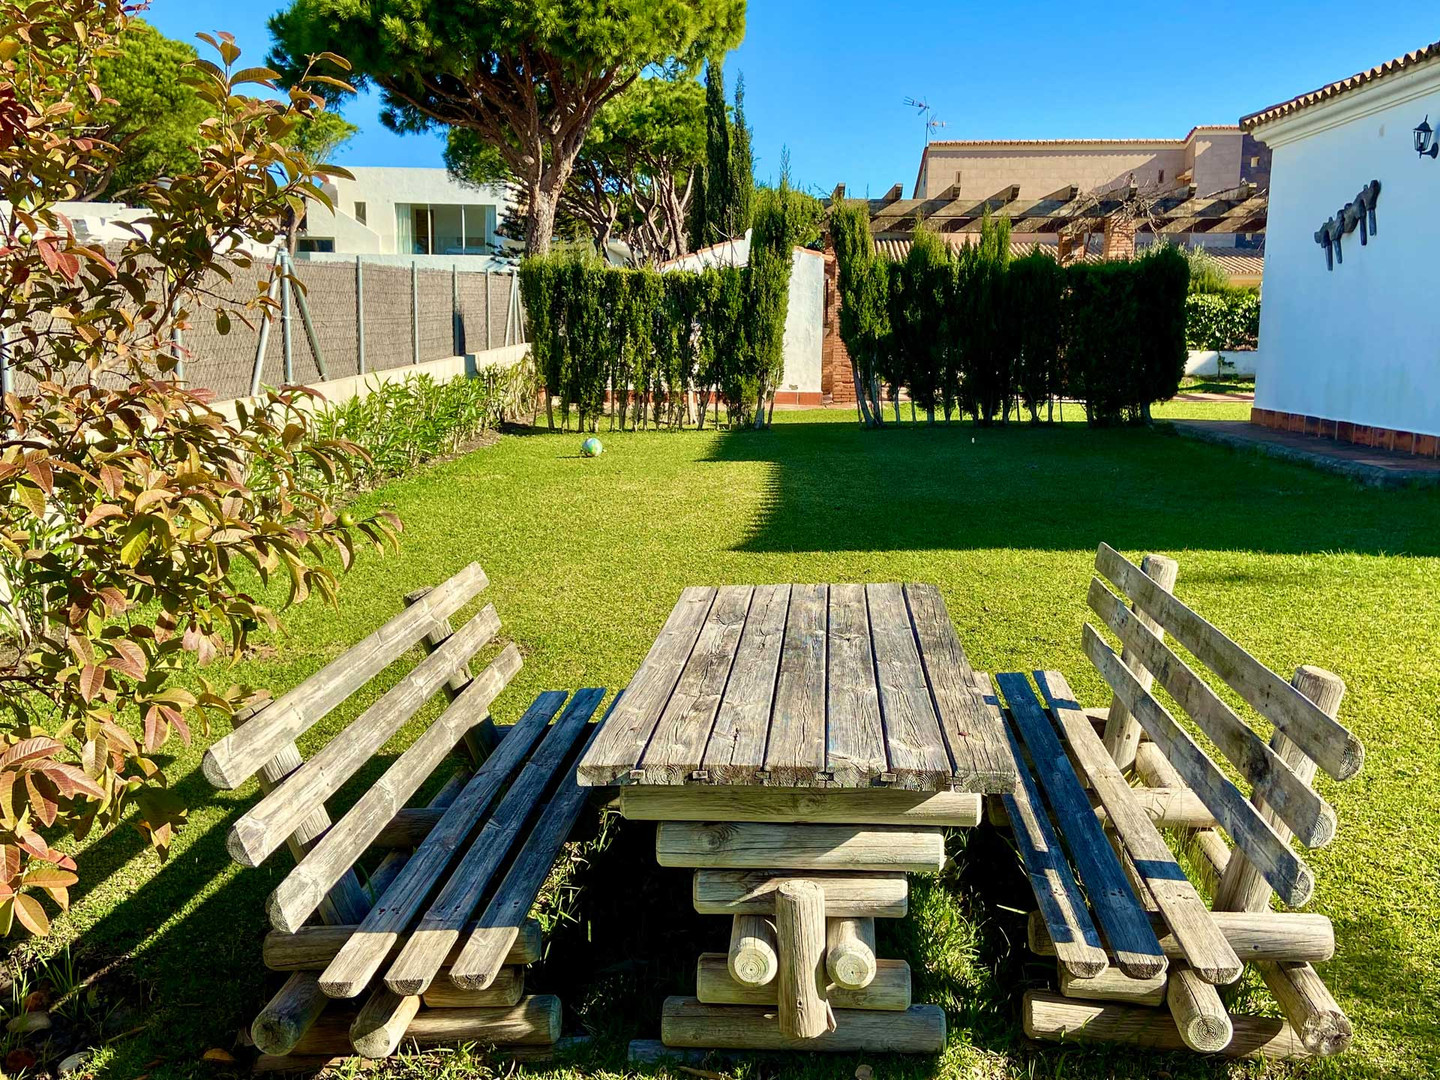 Wooden benches holiday home andalusia